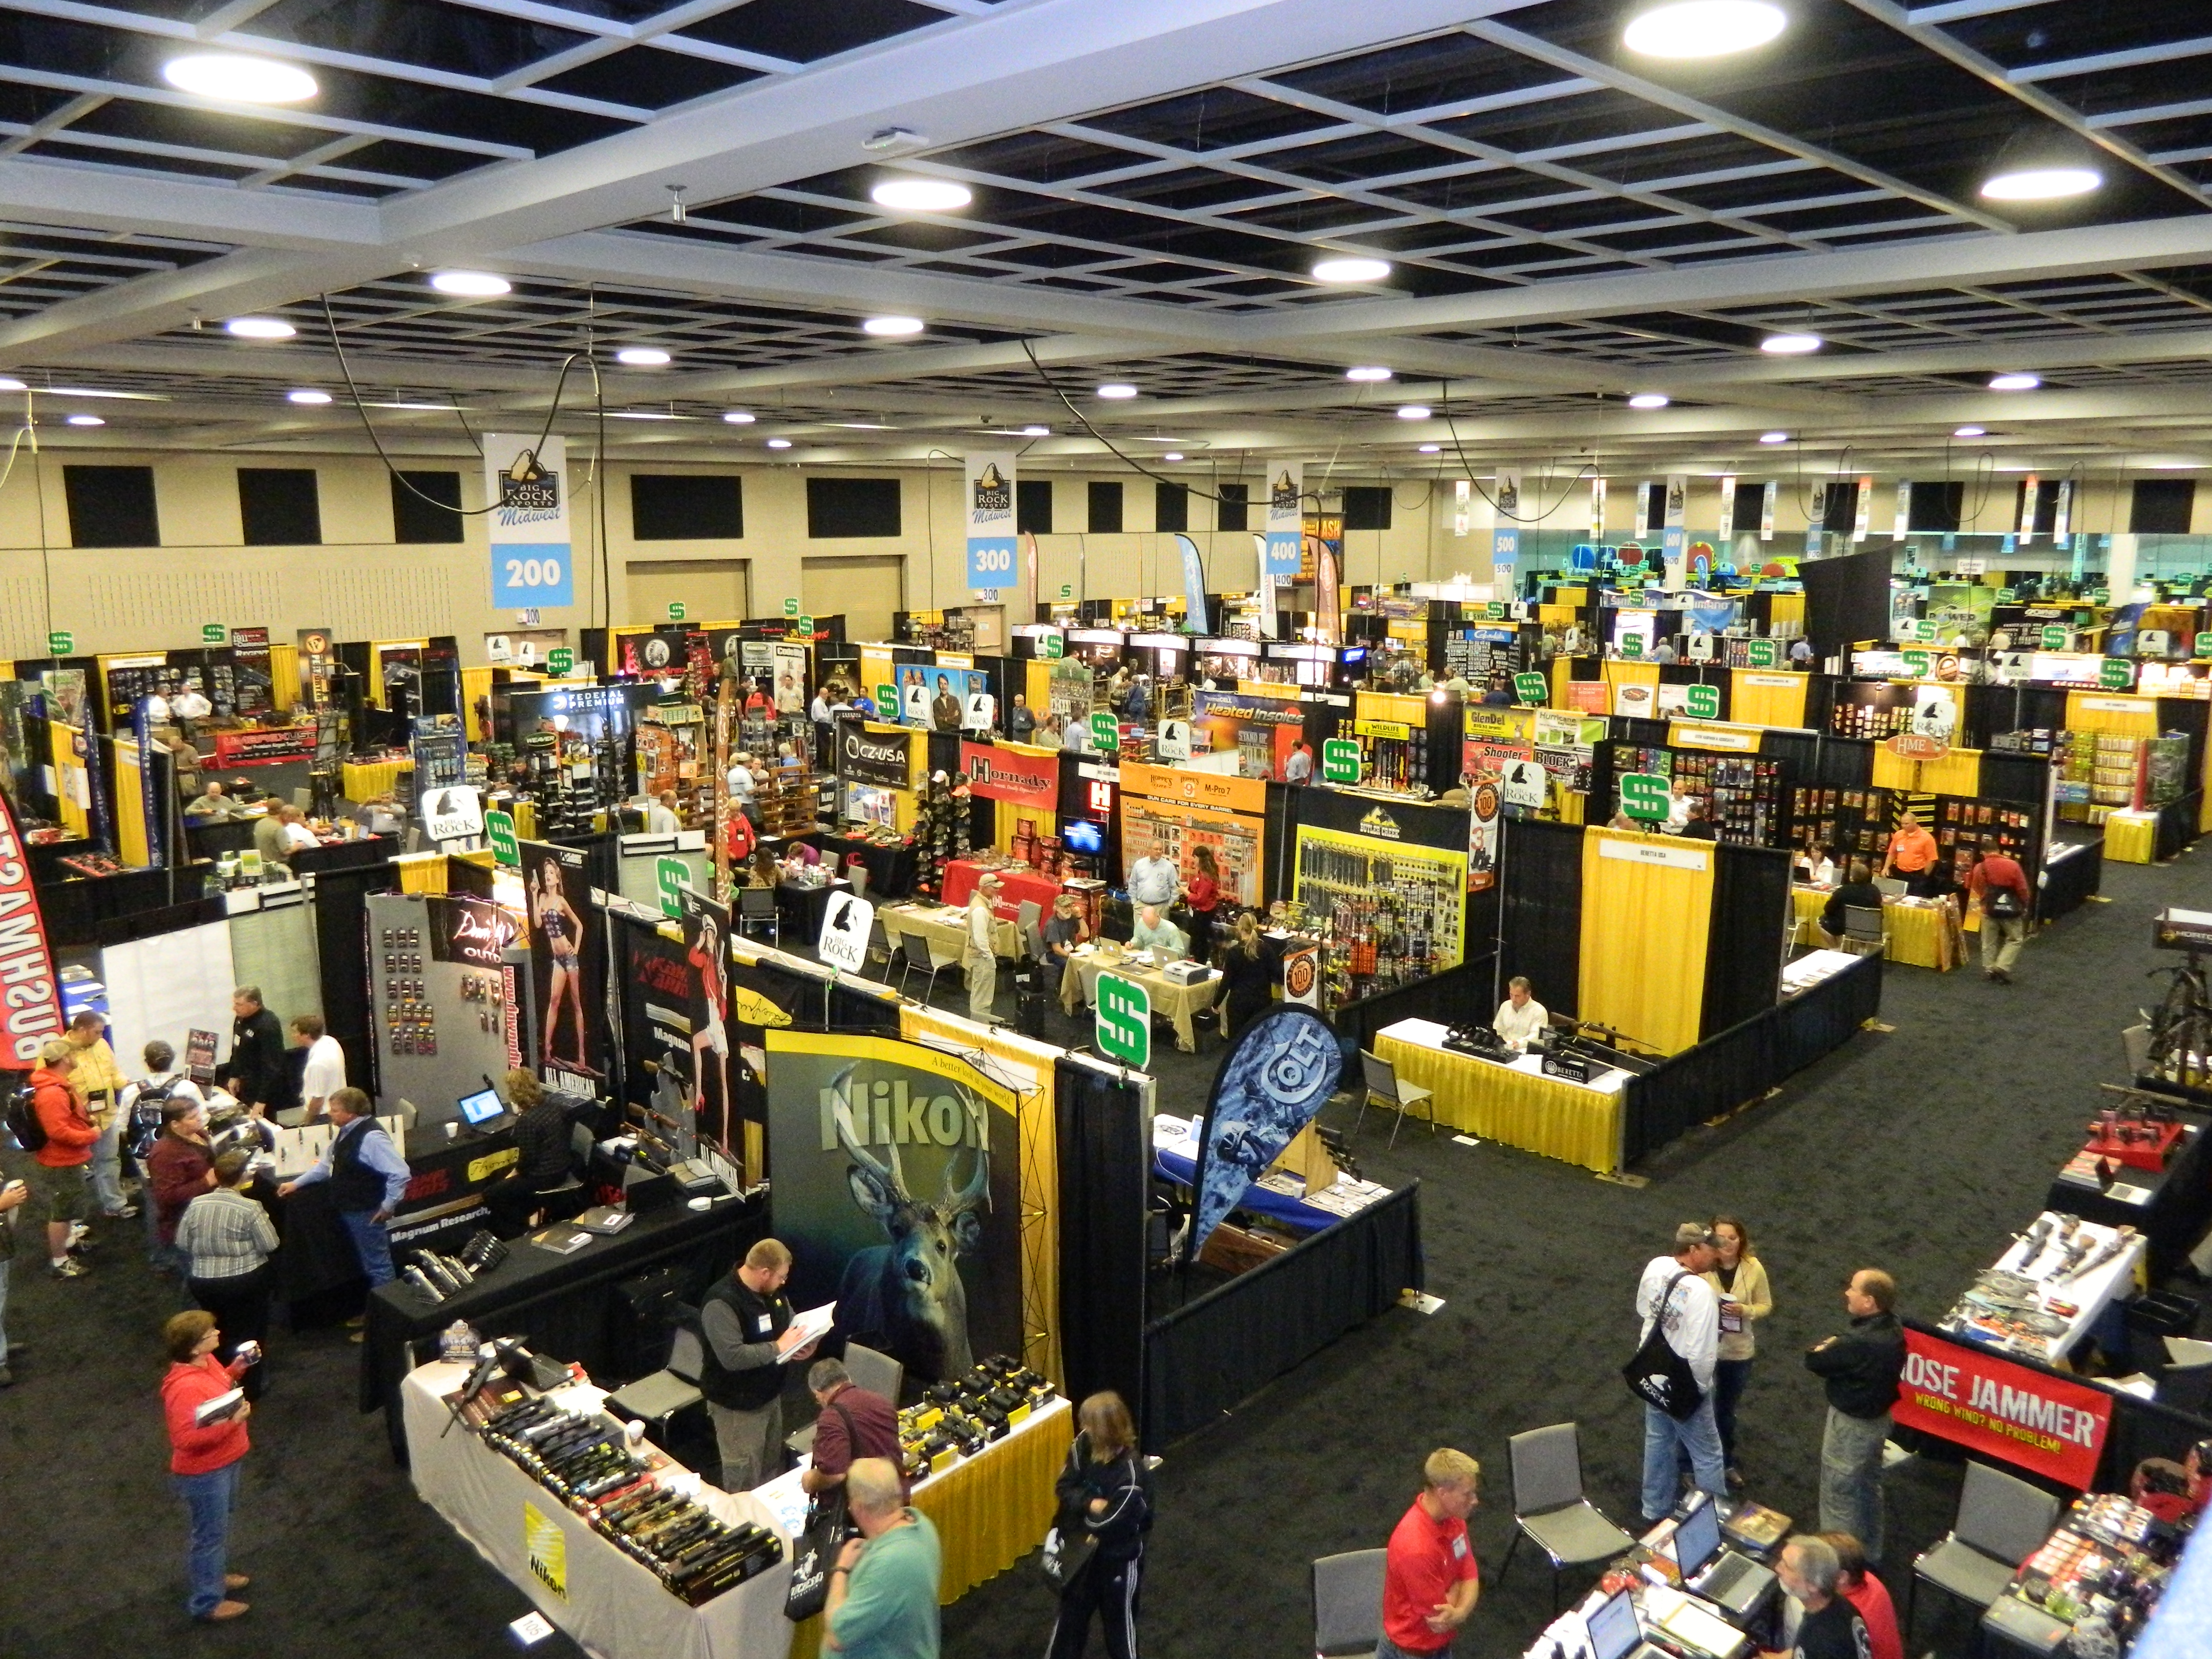 Aerial view of people and booths in convention hall for Big Rock Sports show